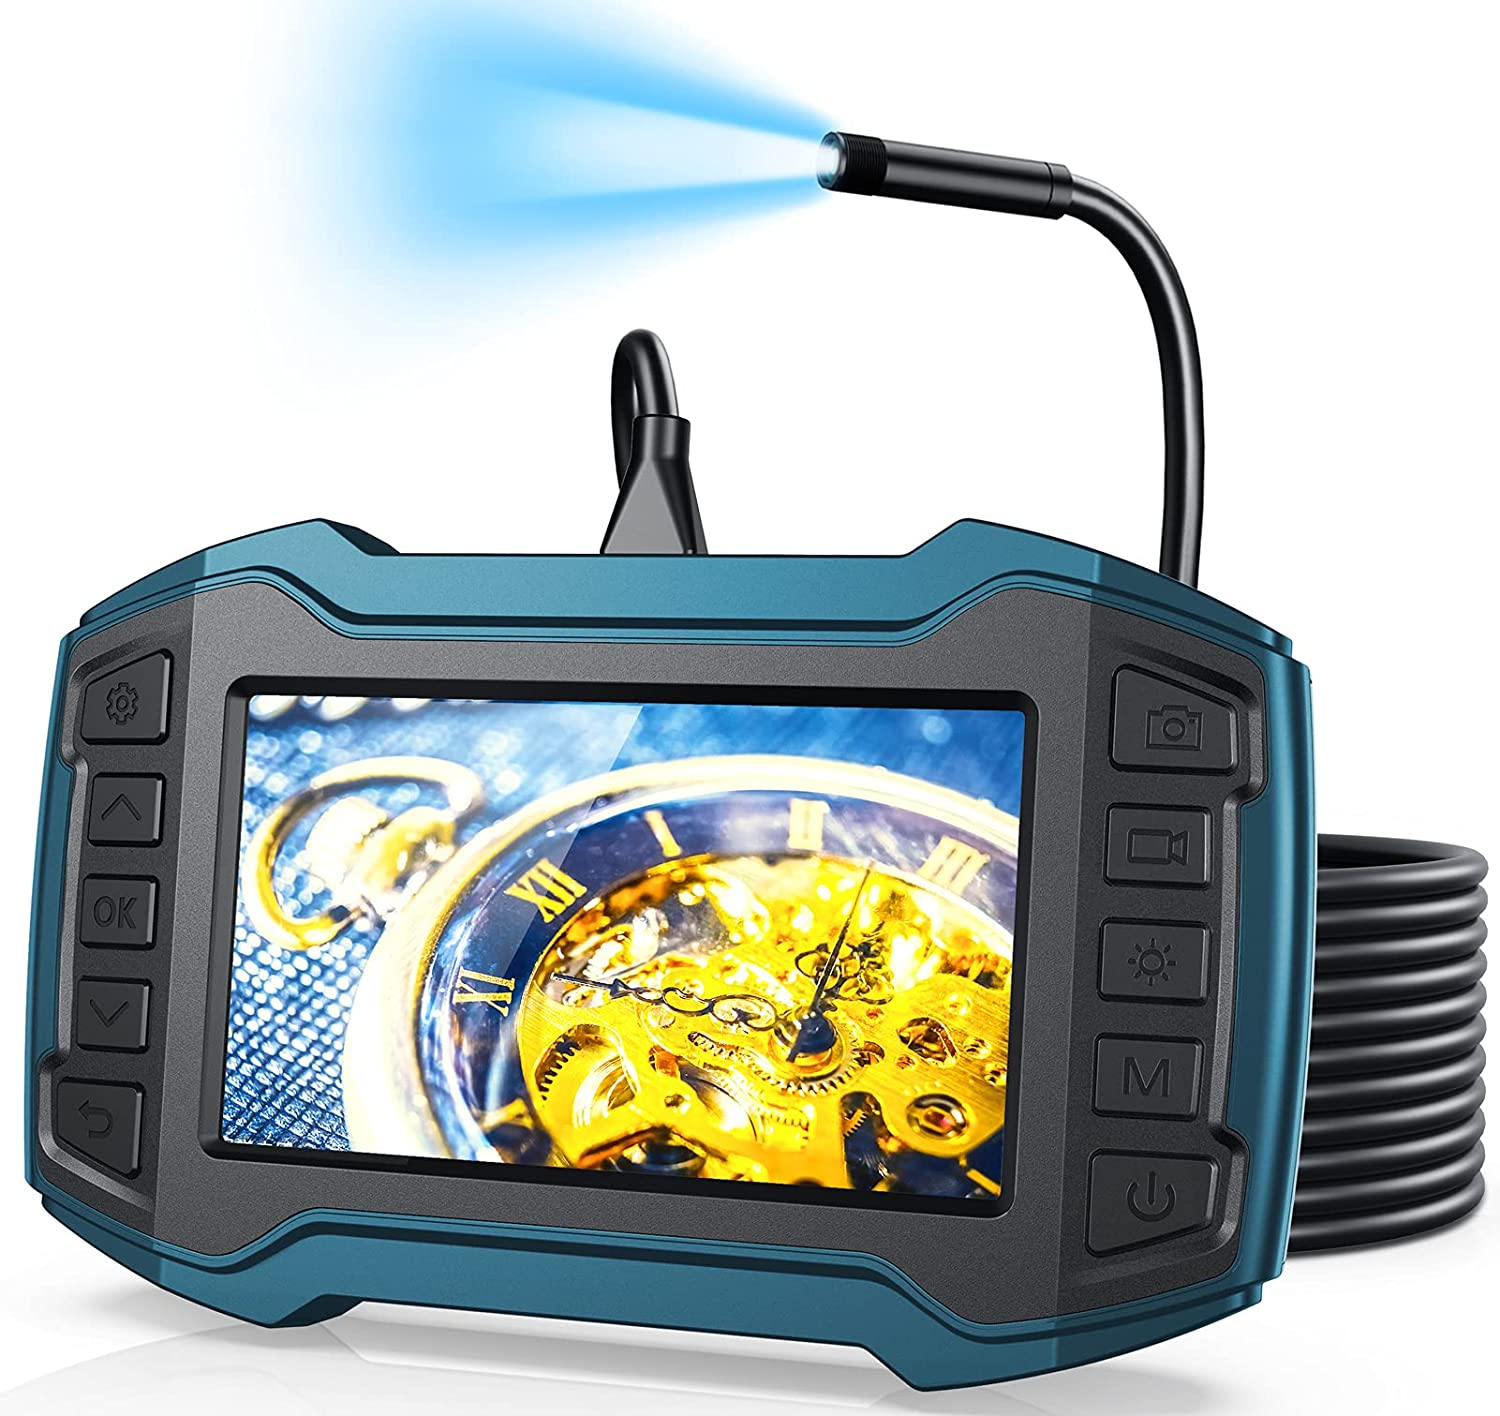 Lonevo 1080p 16.5ft Industrial Endoscope Camera $29.24 Coupon